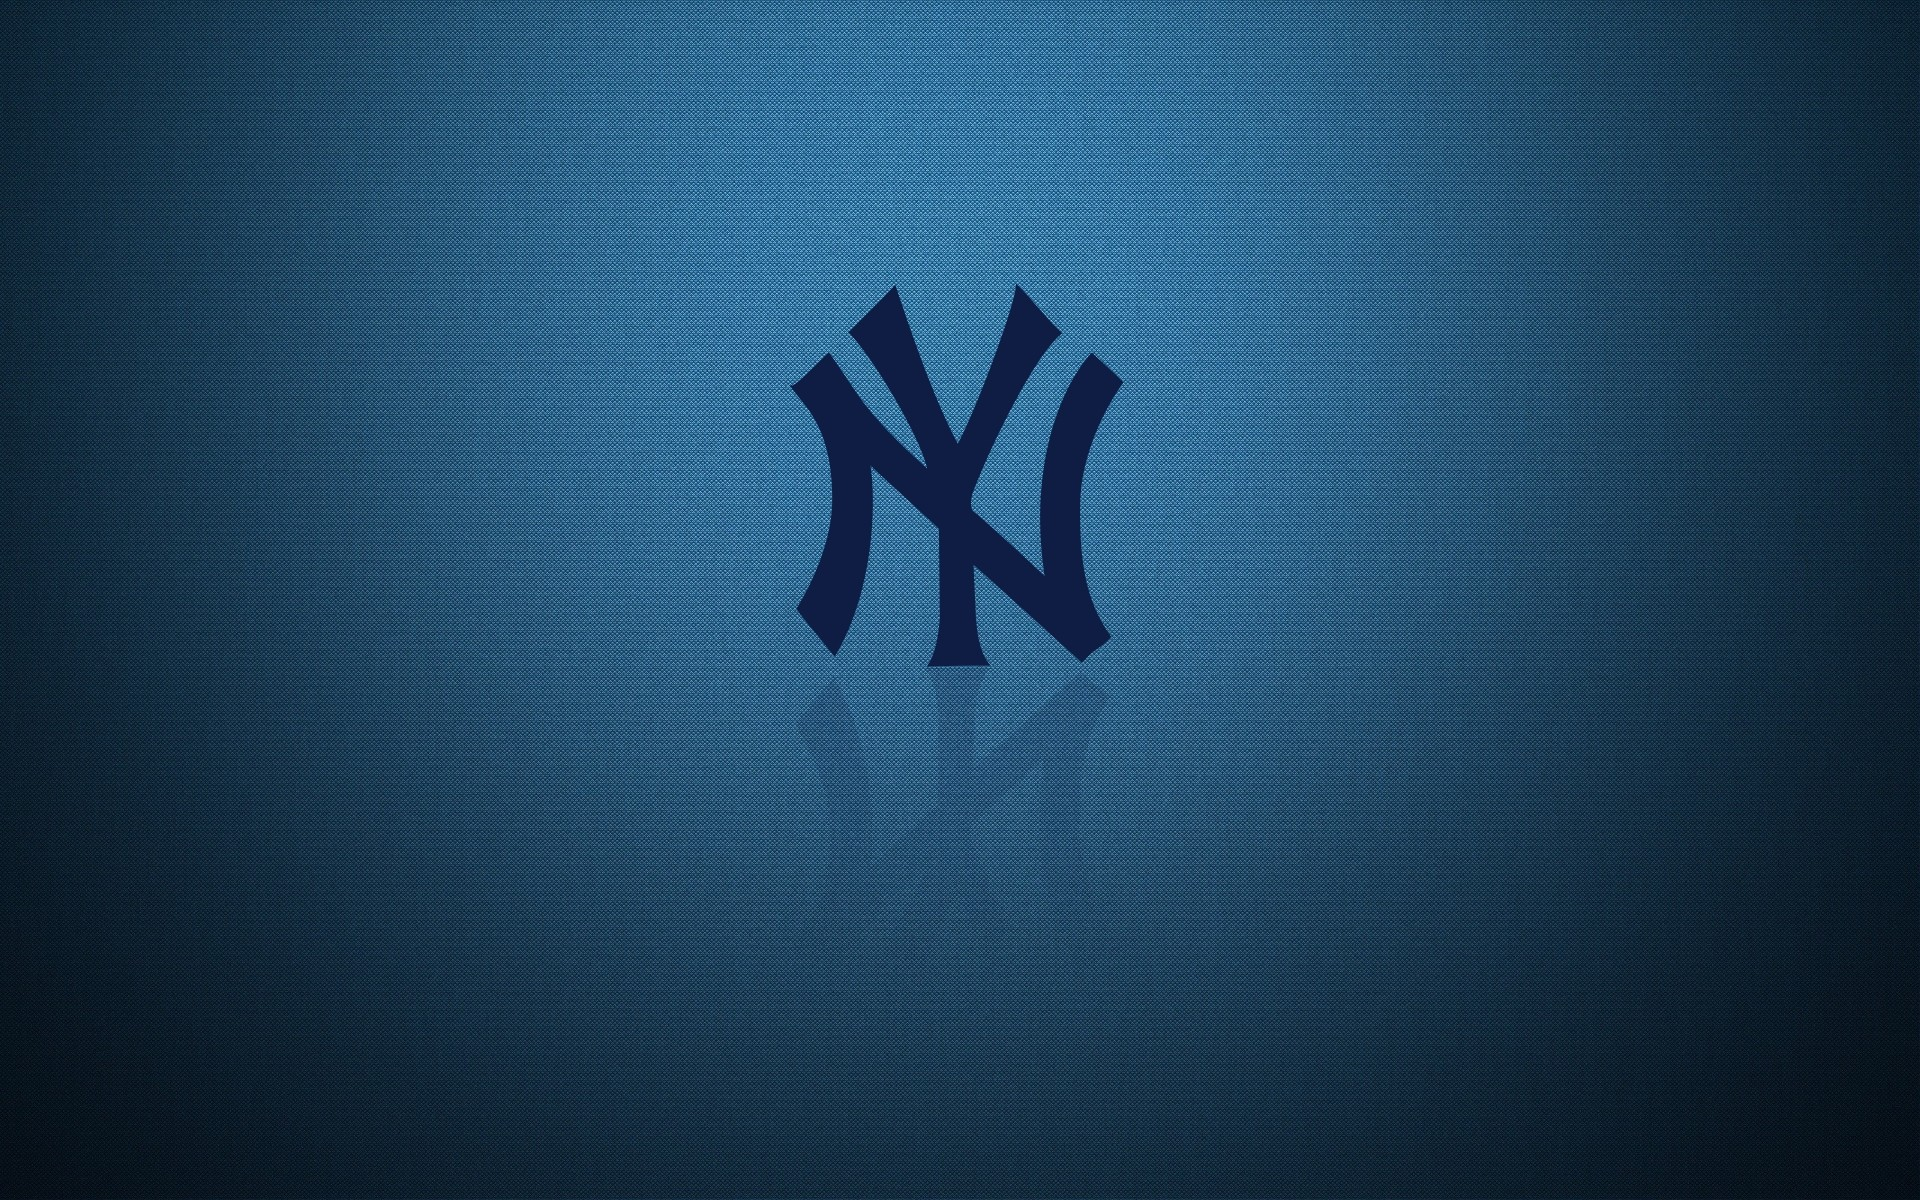 Aaron Judge Wallpaper Hd >> Ny Yankee Screensavers and Wallpapers (65+ images)